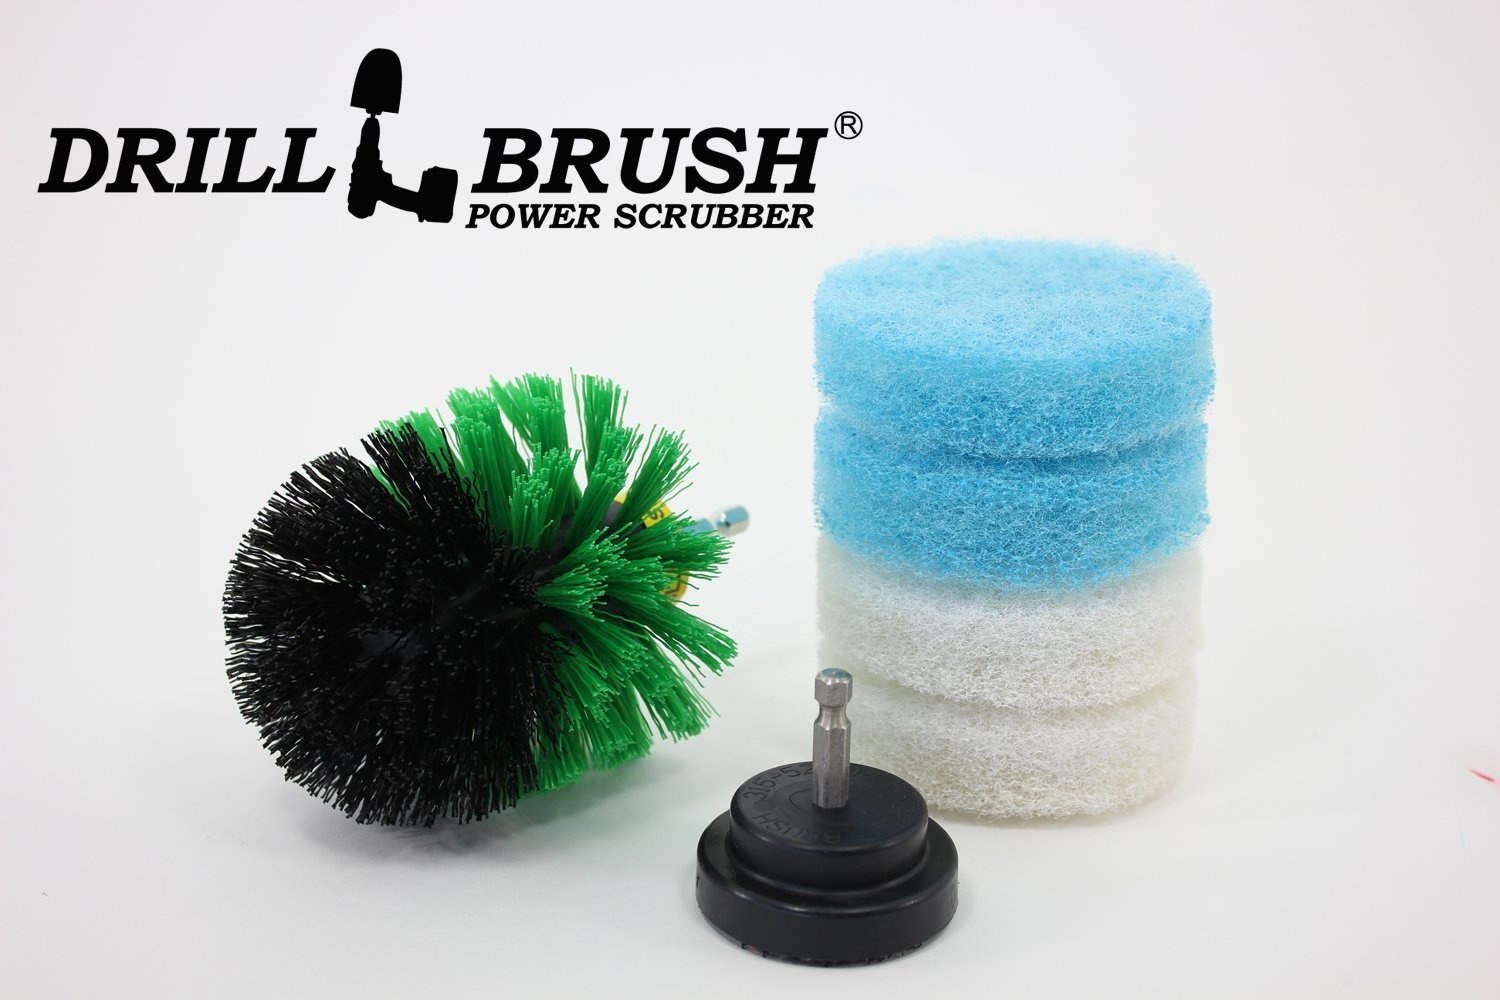 Power Scrubber Brush Homeware: Buy Online from Fishpond.co.nz